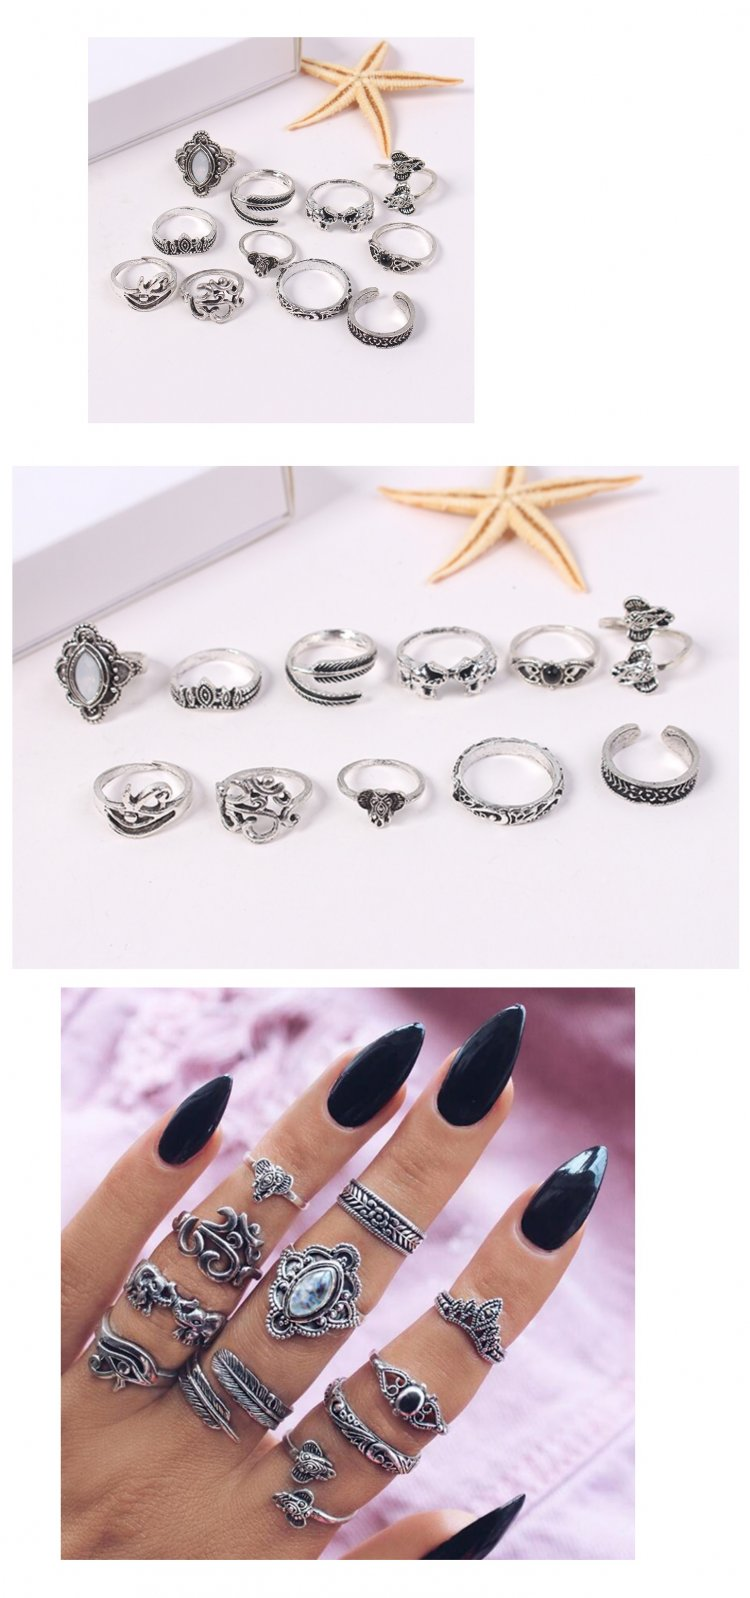 P132721 Silver Various Shapes Diameter:1.5-1.7CM 11Pieces Rings